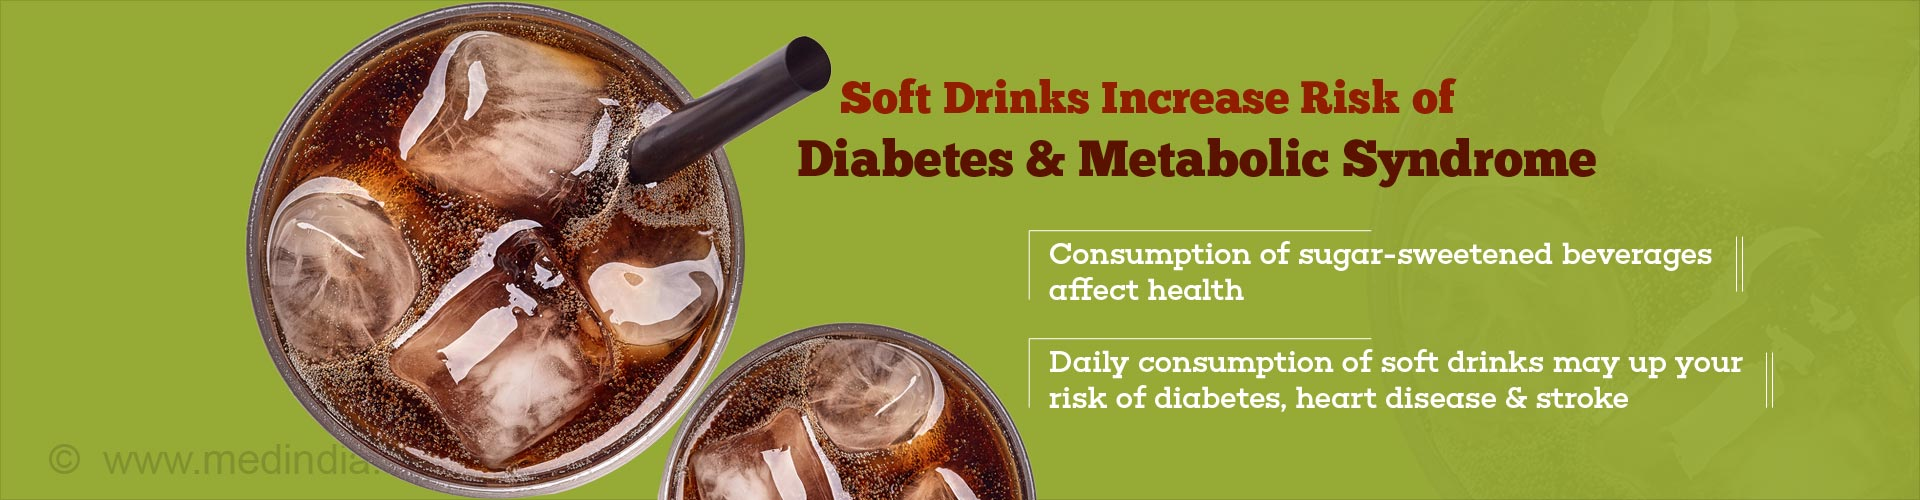 Sugary Drinks Increase Risk of Diabetes, Heart Disease and Stroke